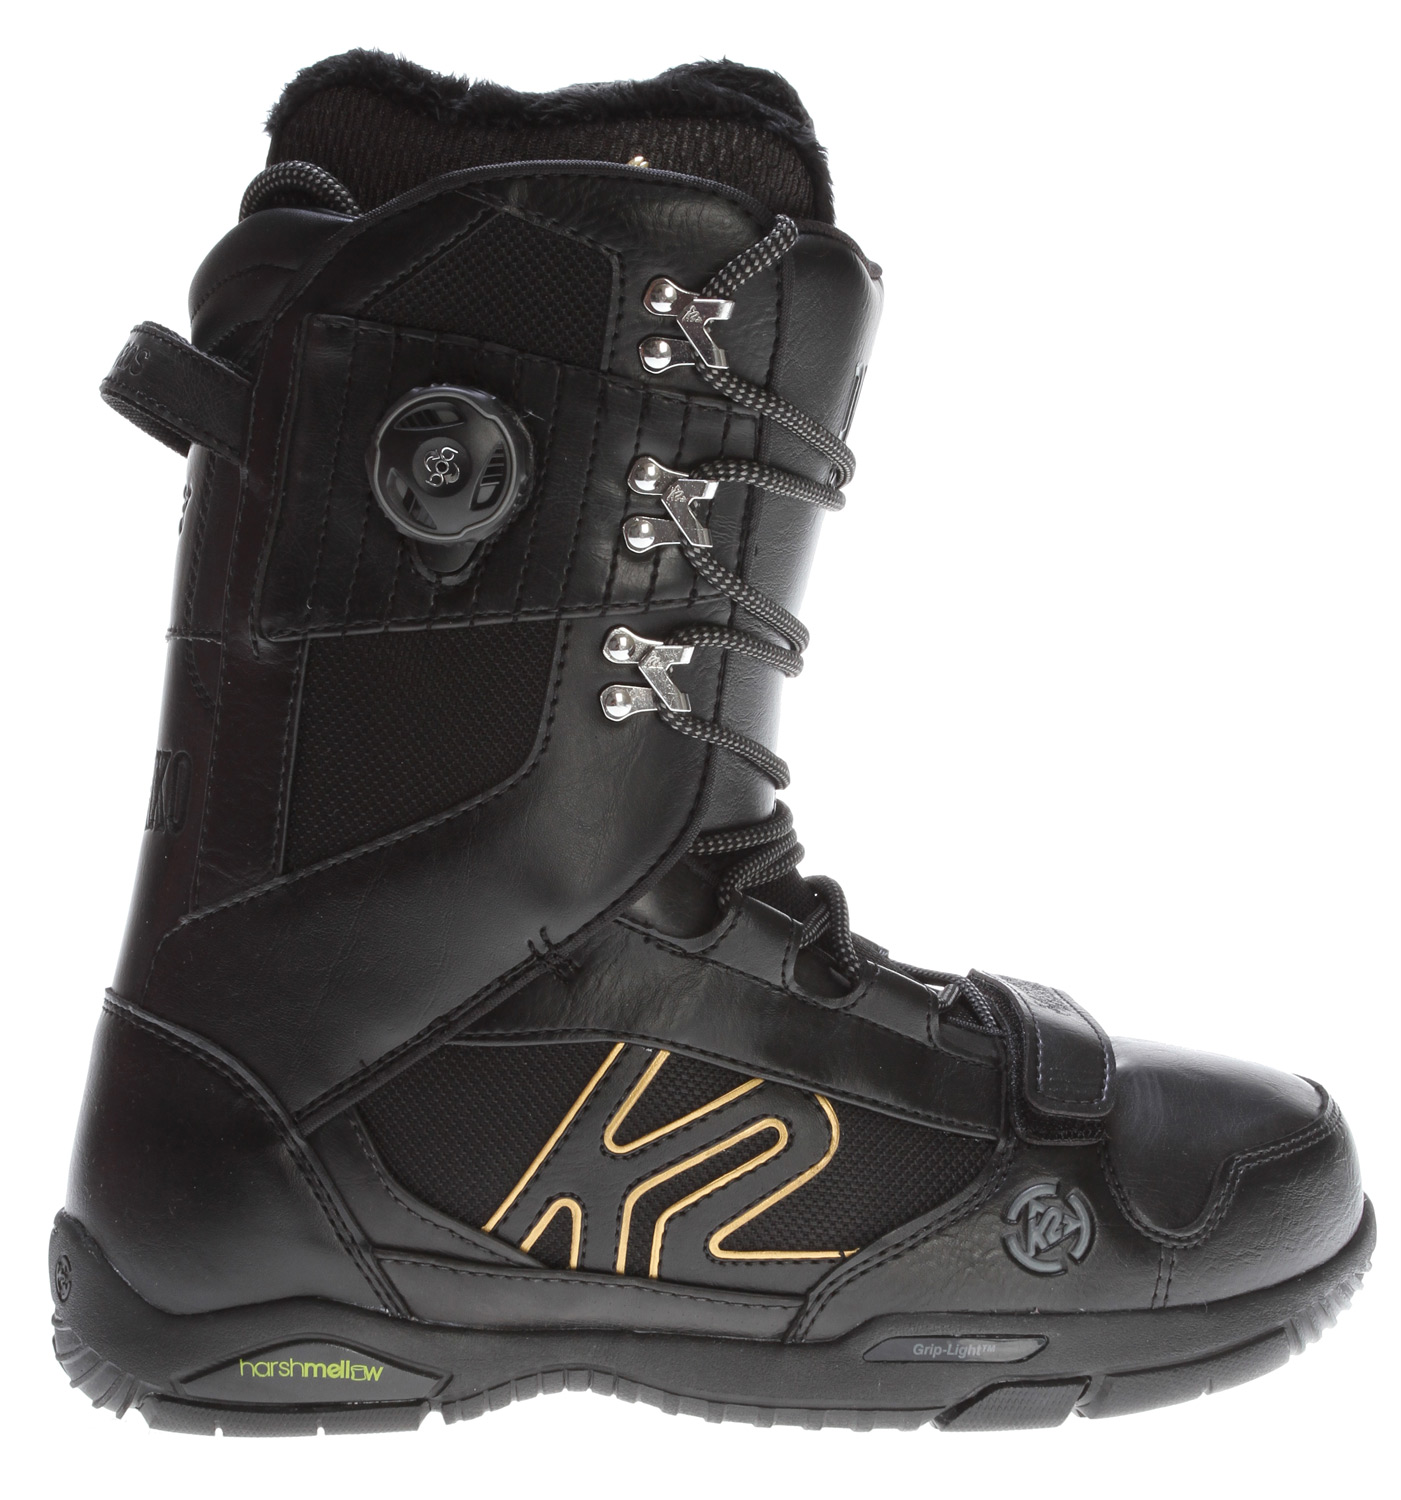 Snowboard A staple of K2's freestlye boot offering, the now lighter than ever Darko is the team choice for freestyle domination, featuring BoaConda liner lacing and Harshmellow dampening. Focused on the rider looking for a supportive yet flexible park boot, the Darko will continue to prove it's worth in gold. Key Features of the K2 Darko BOA Conda Snowboard Boots: Lacing System: Lace Up Liner Lacing: Boa?Conda Liner: Intuition? Control Foam 3D Outsole: NEW Grip-Lite Phylon with Rubber Pods and Harshmellow? Footbed: 3D Formed EVA with Harshmellow? Liner fit: Moldable Internal J Bars, Velcro Pod Closure Details: 3D Formed Tongue, Micro Articulating Cuff - $160.95